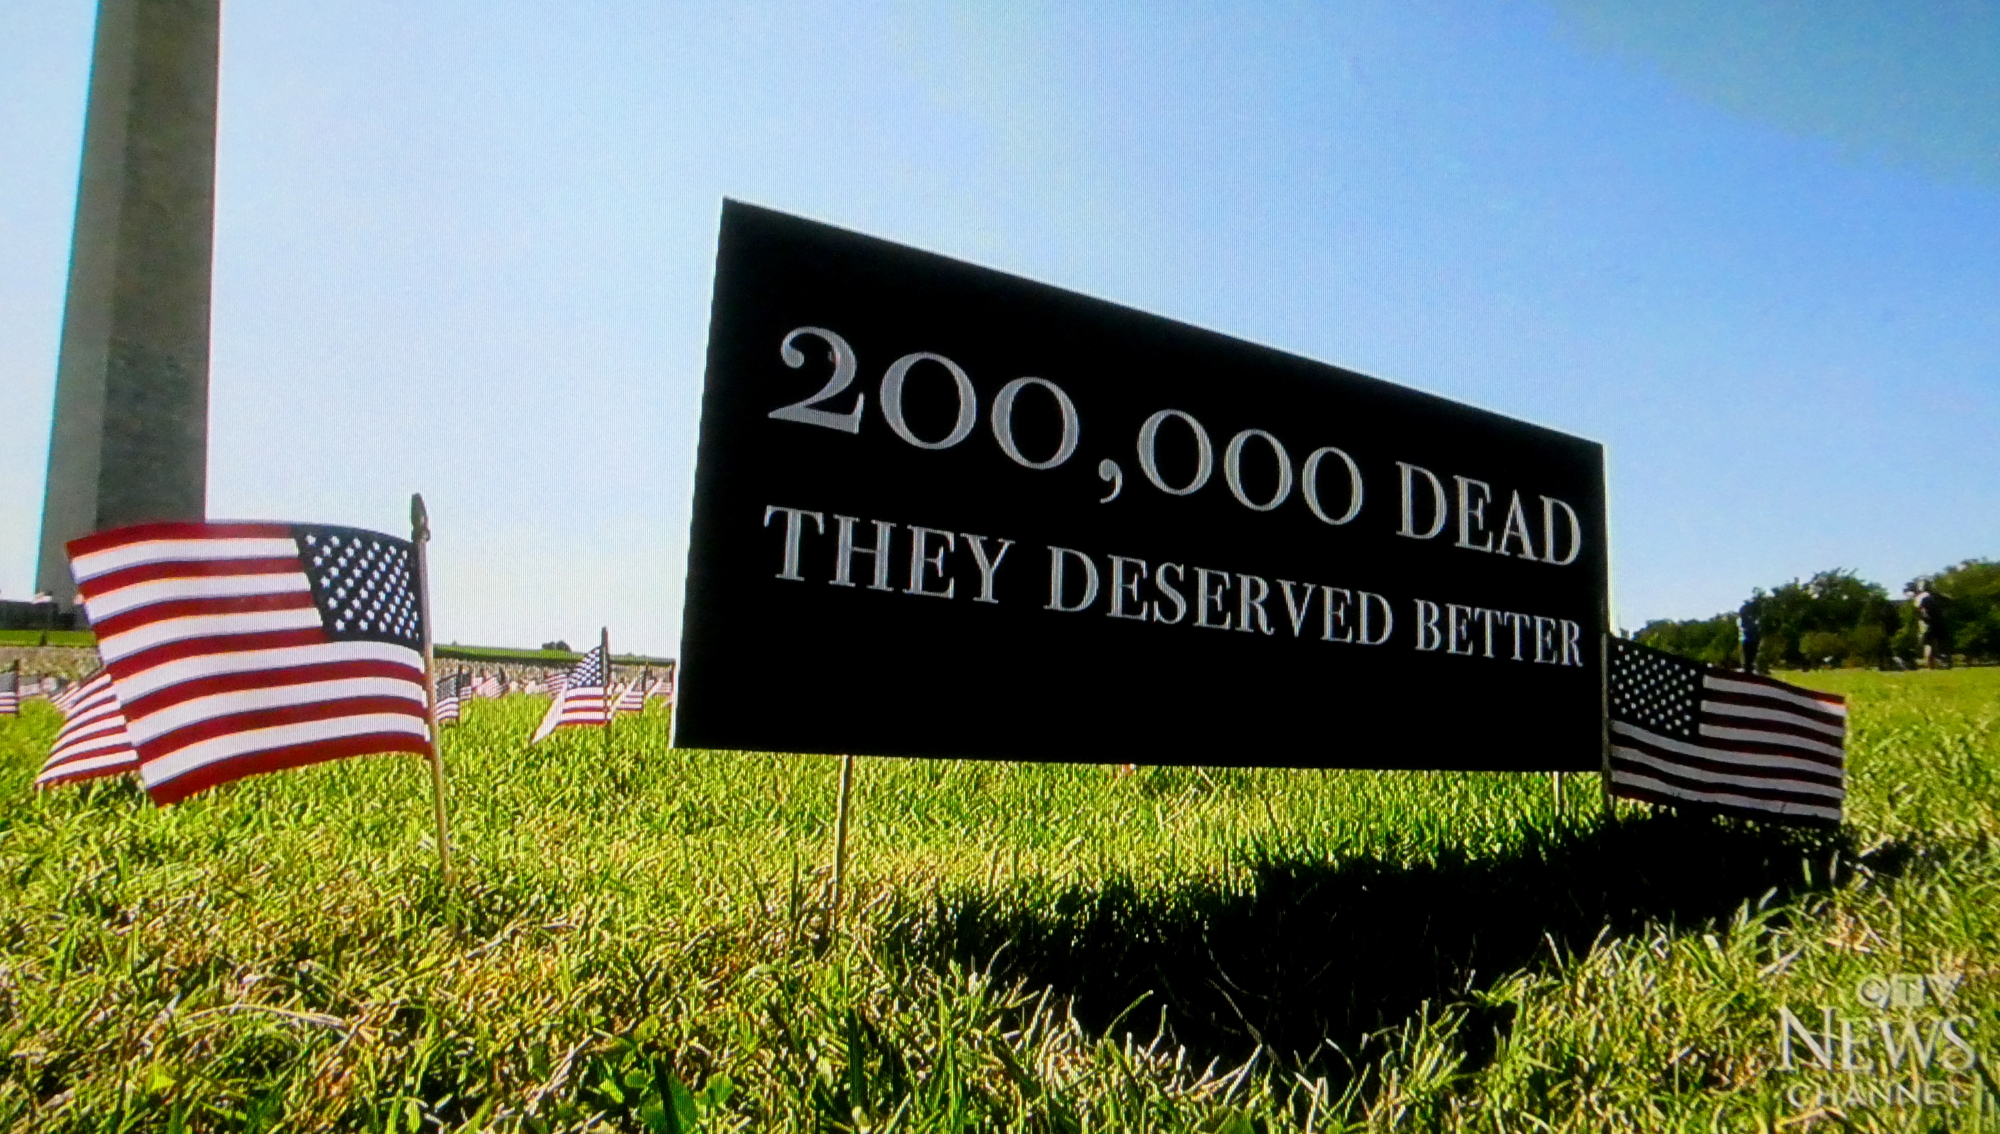 200,000 COVID-19 Deaths in the United States. They deserve better. CTV News, Sep. 22, 2020, CTV News.